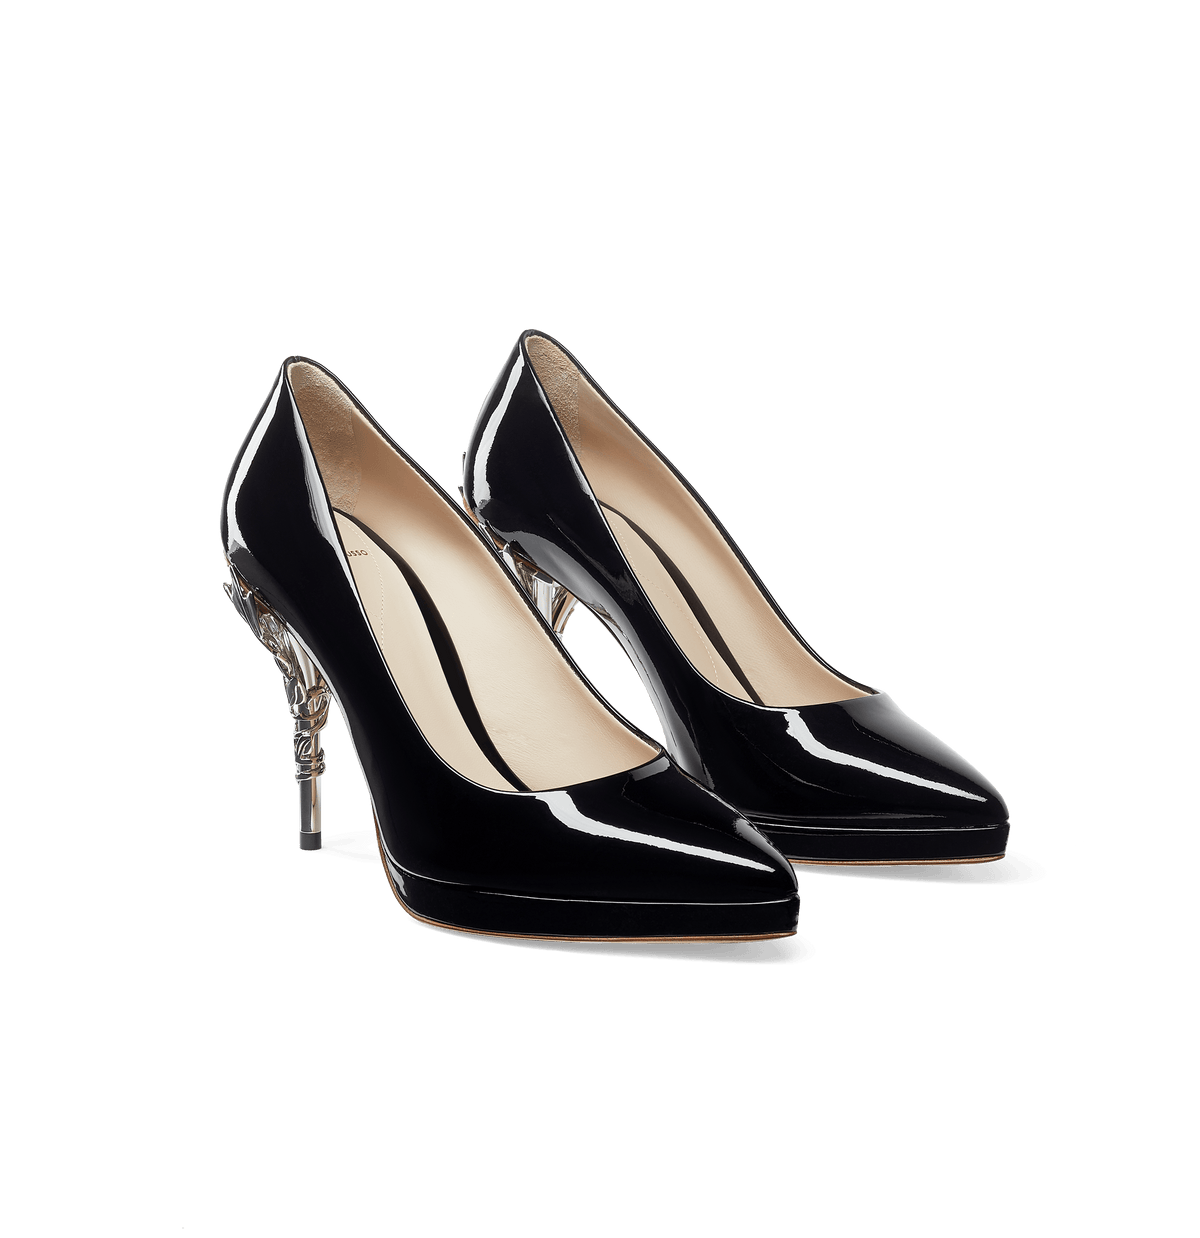 Black Patent Leather with Silver Leaves